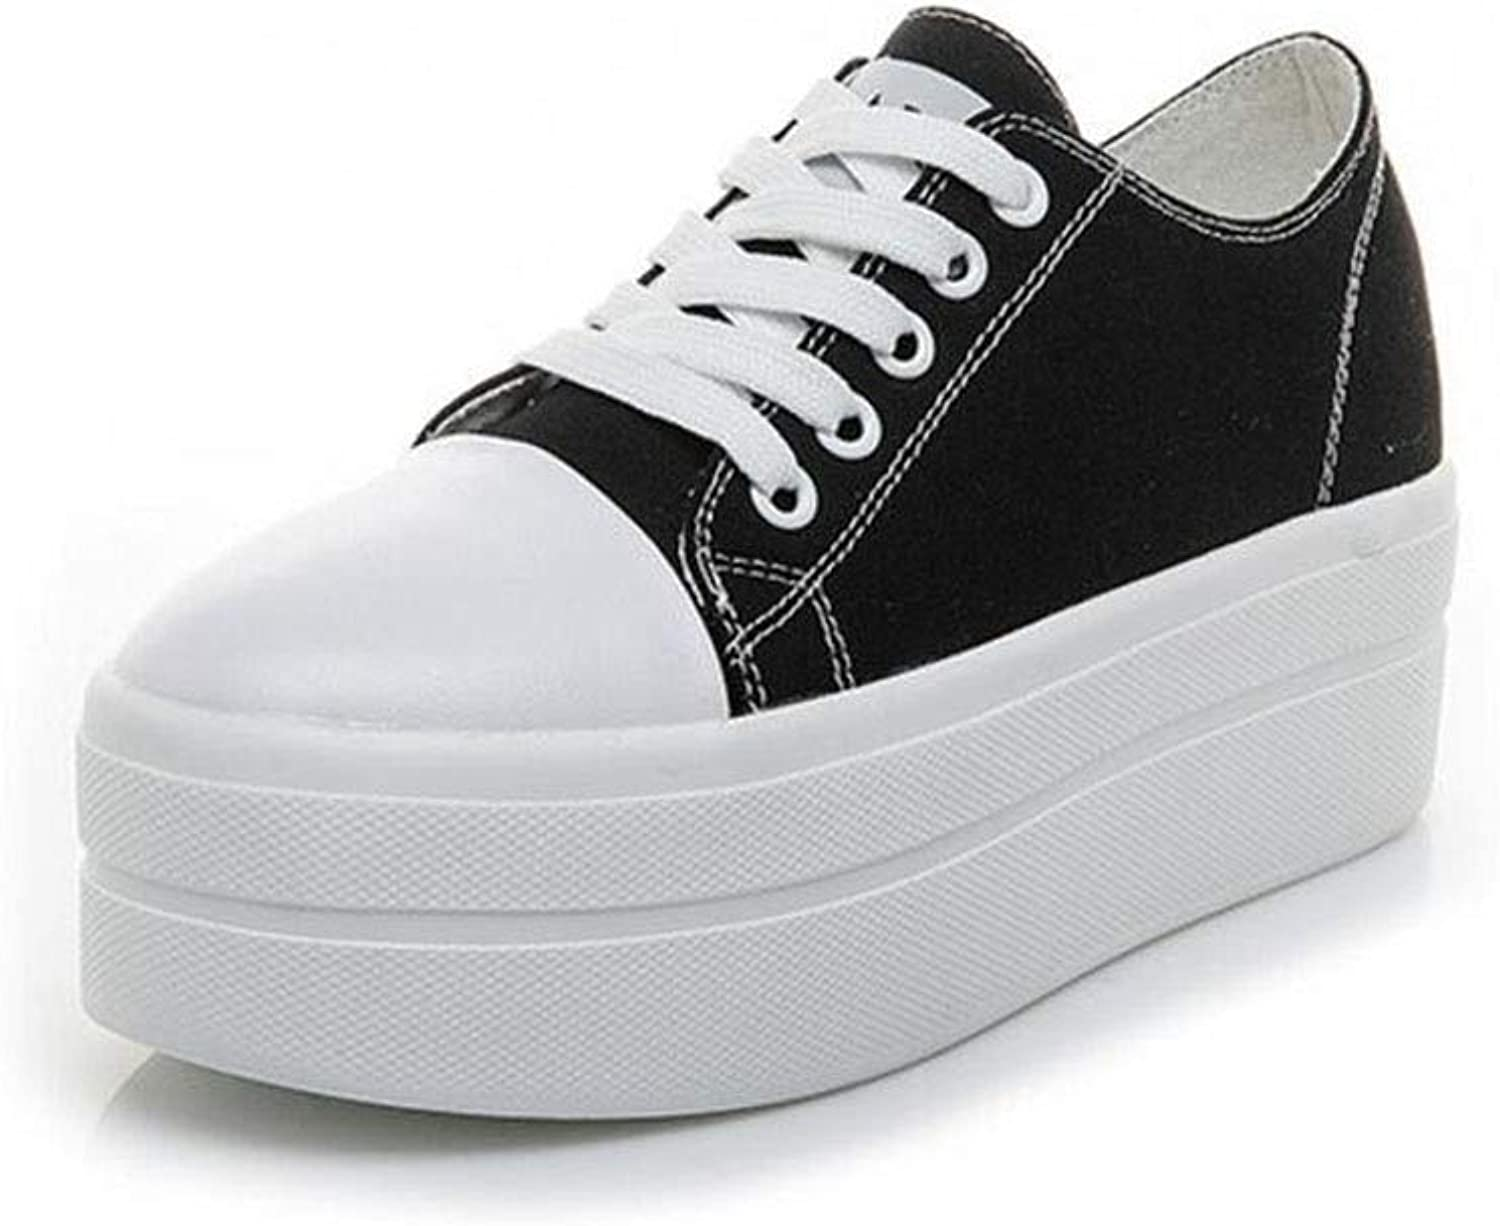 Women's Canvas shoes Casual Sneakers Low Cut Lace Up Fashion Comfortable Walking Flats, Women's Canvas Low Top Sneaker Lace-up Classic Casual shoes Black and White (color   Black, Size   5.5 US)